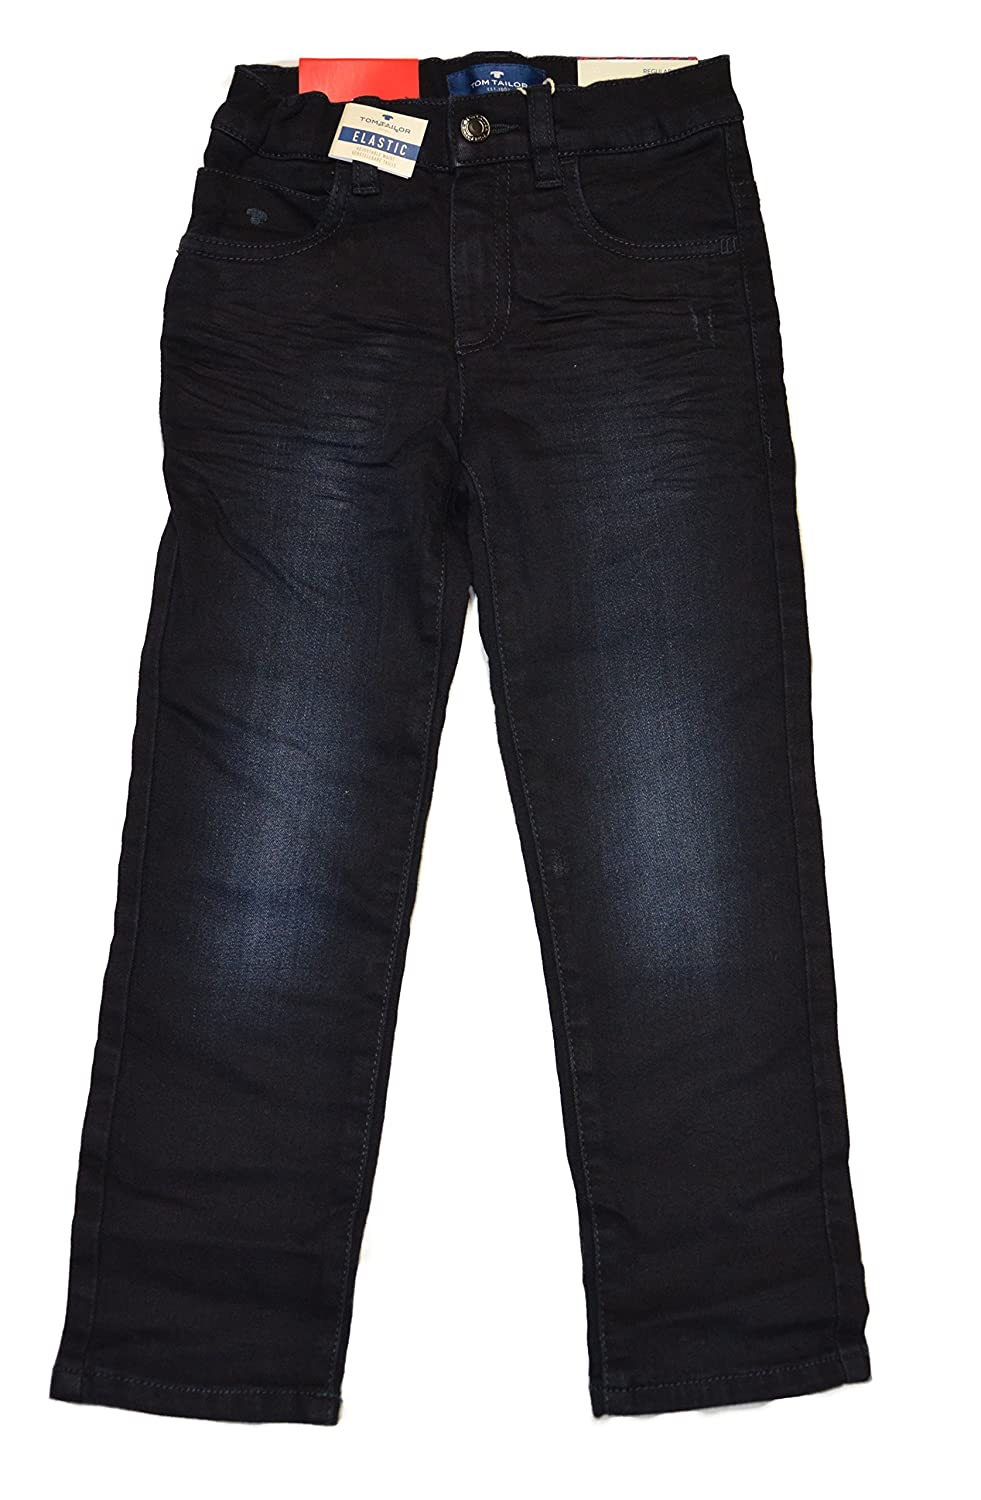 Tom Tailor Kids Jungen Jeans Hose Slim Tim Extra Ski Boys dark Blue washed Tim Slim Blau (1100) 62036620182 Gr. 92 - 134